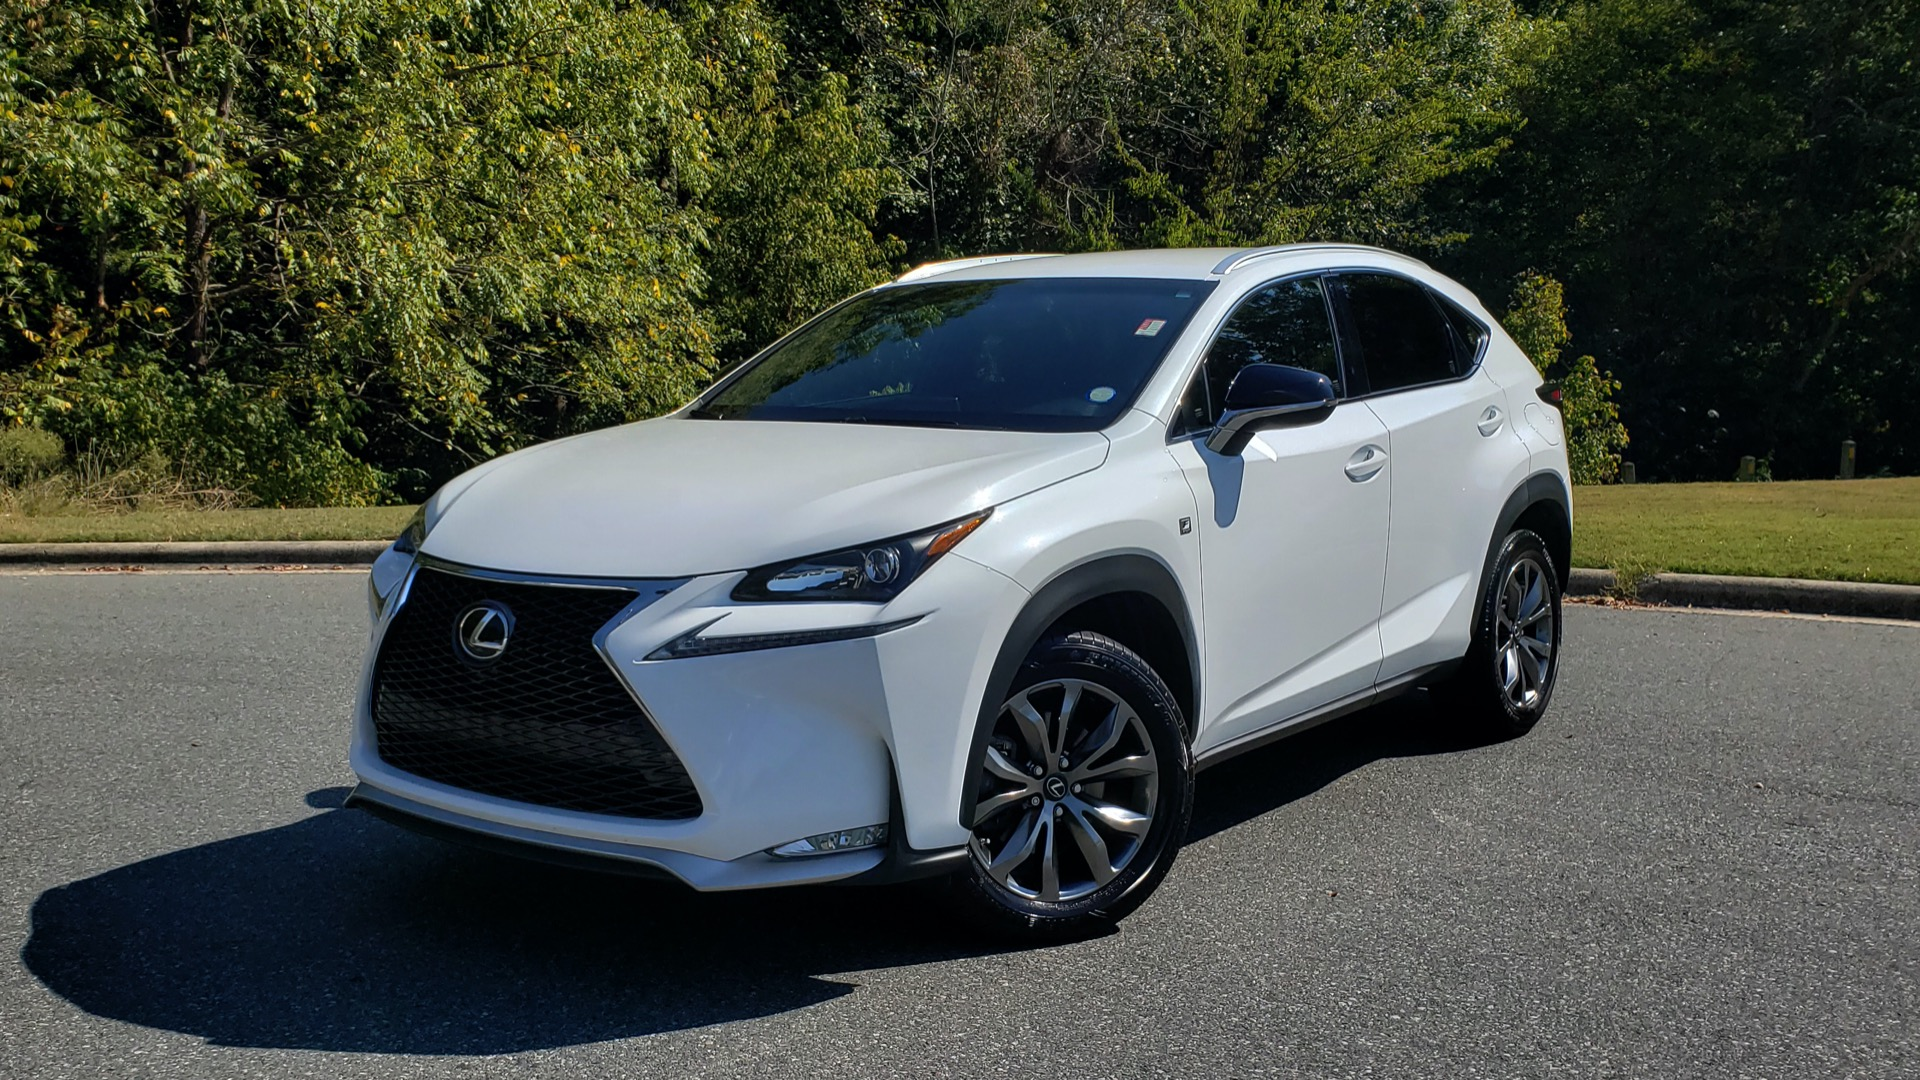 Used 2016 Lexus NX 200t F-SPORT / BACK-UP CAMERA / 18 INCH WHEELS for sale Sold at Formula Imports in Charlotte NC 28227 1